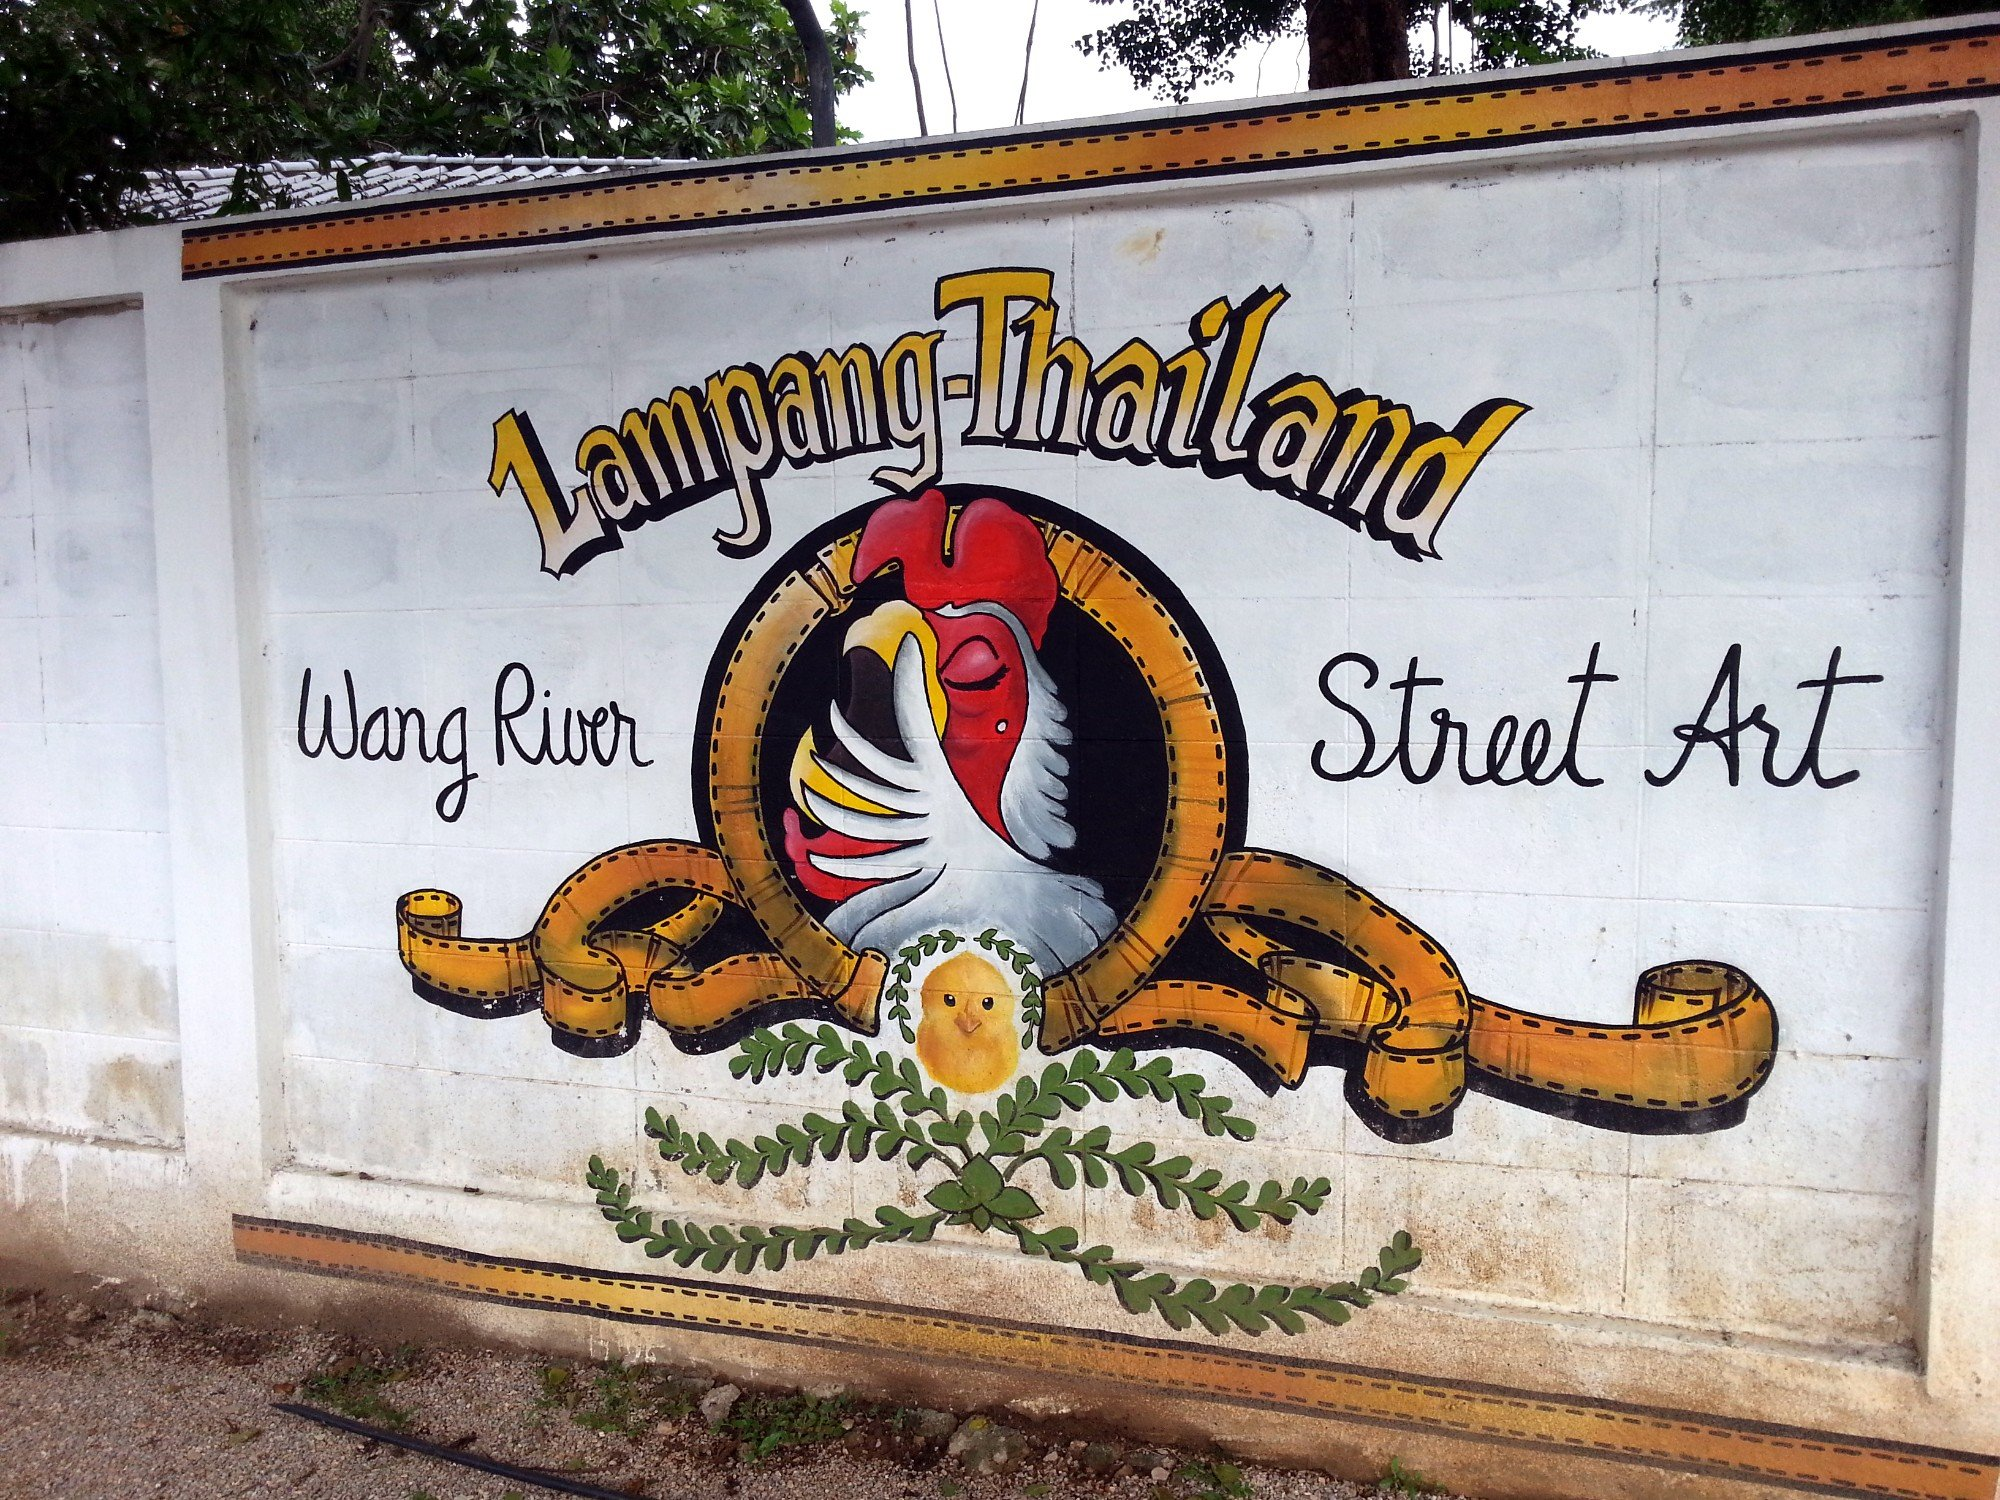 Street Art on the Wang River in Lampang